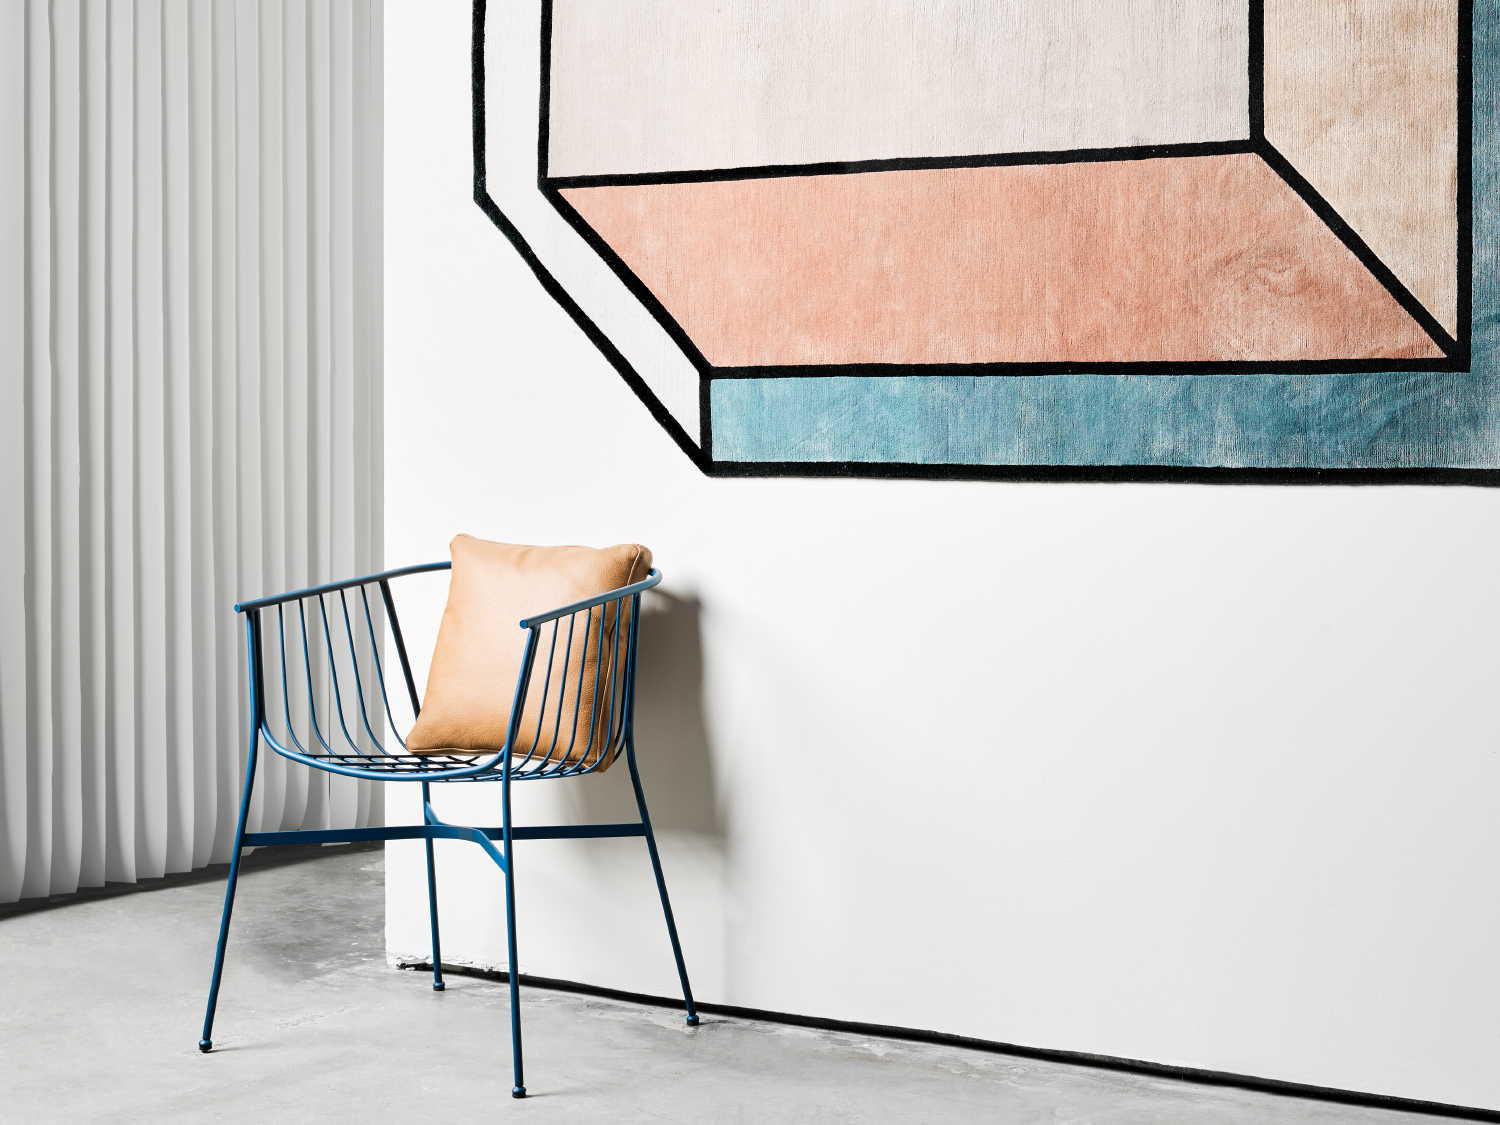 A Down Under Furniture Brand Meets an American Favorite in Soho